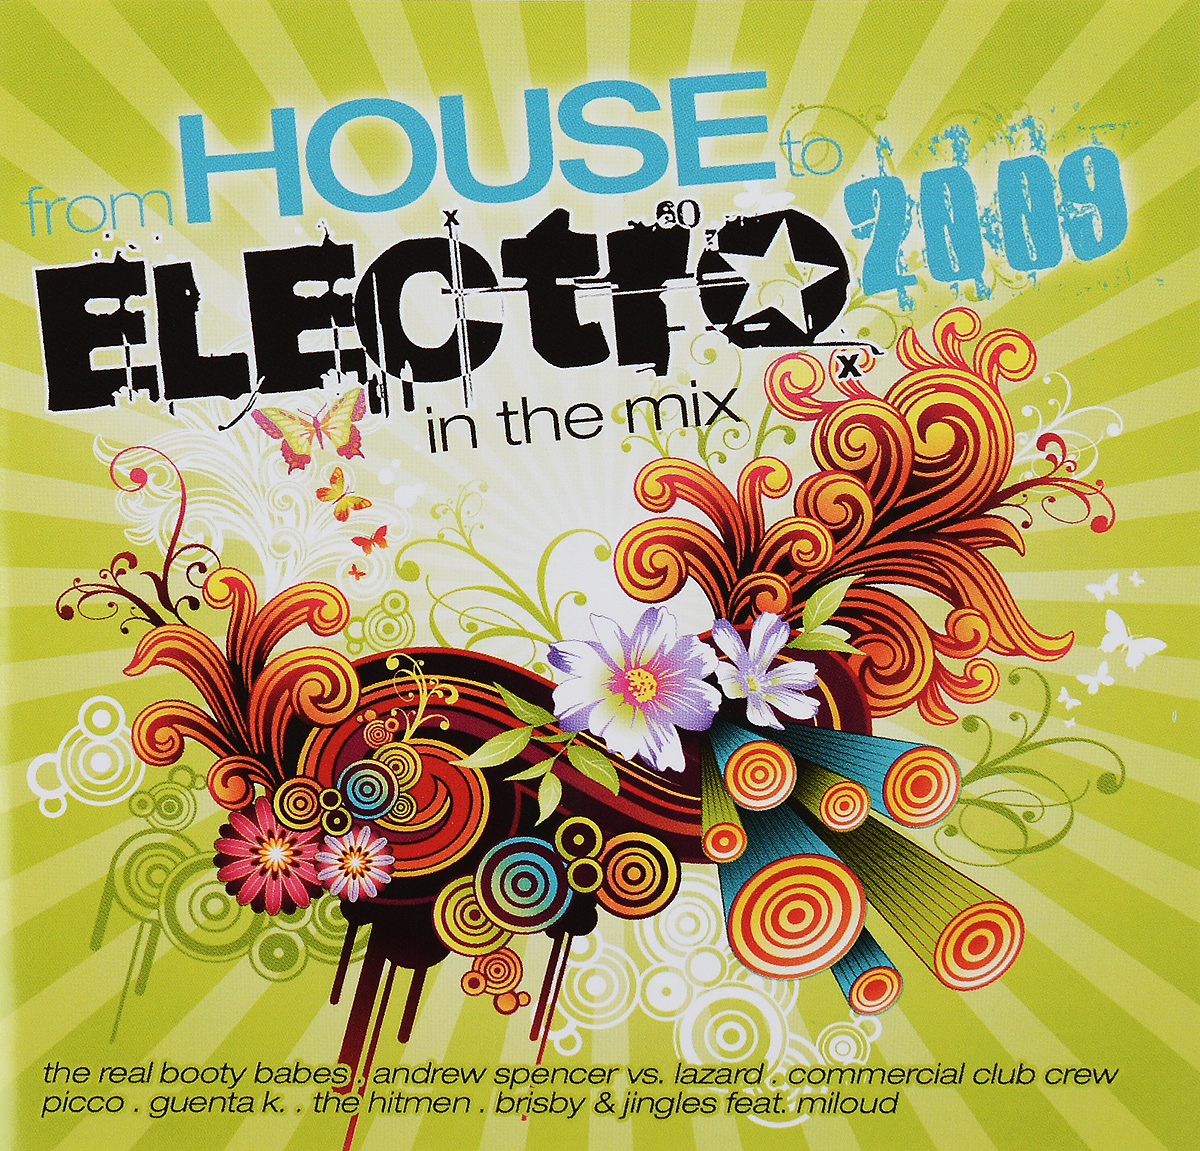 From House To Electro 2009 In The Mix (2 CD)